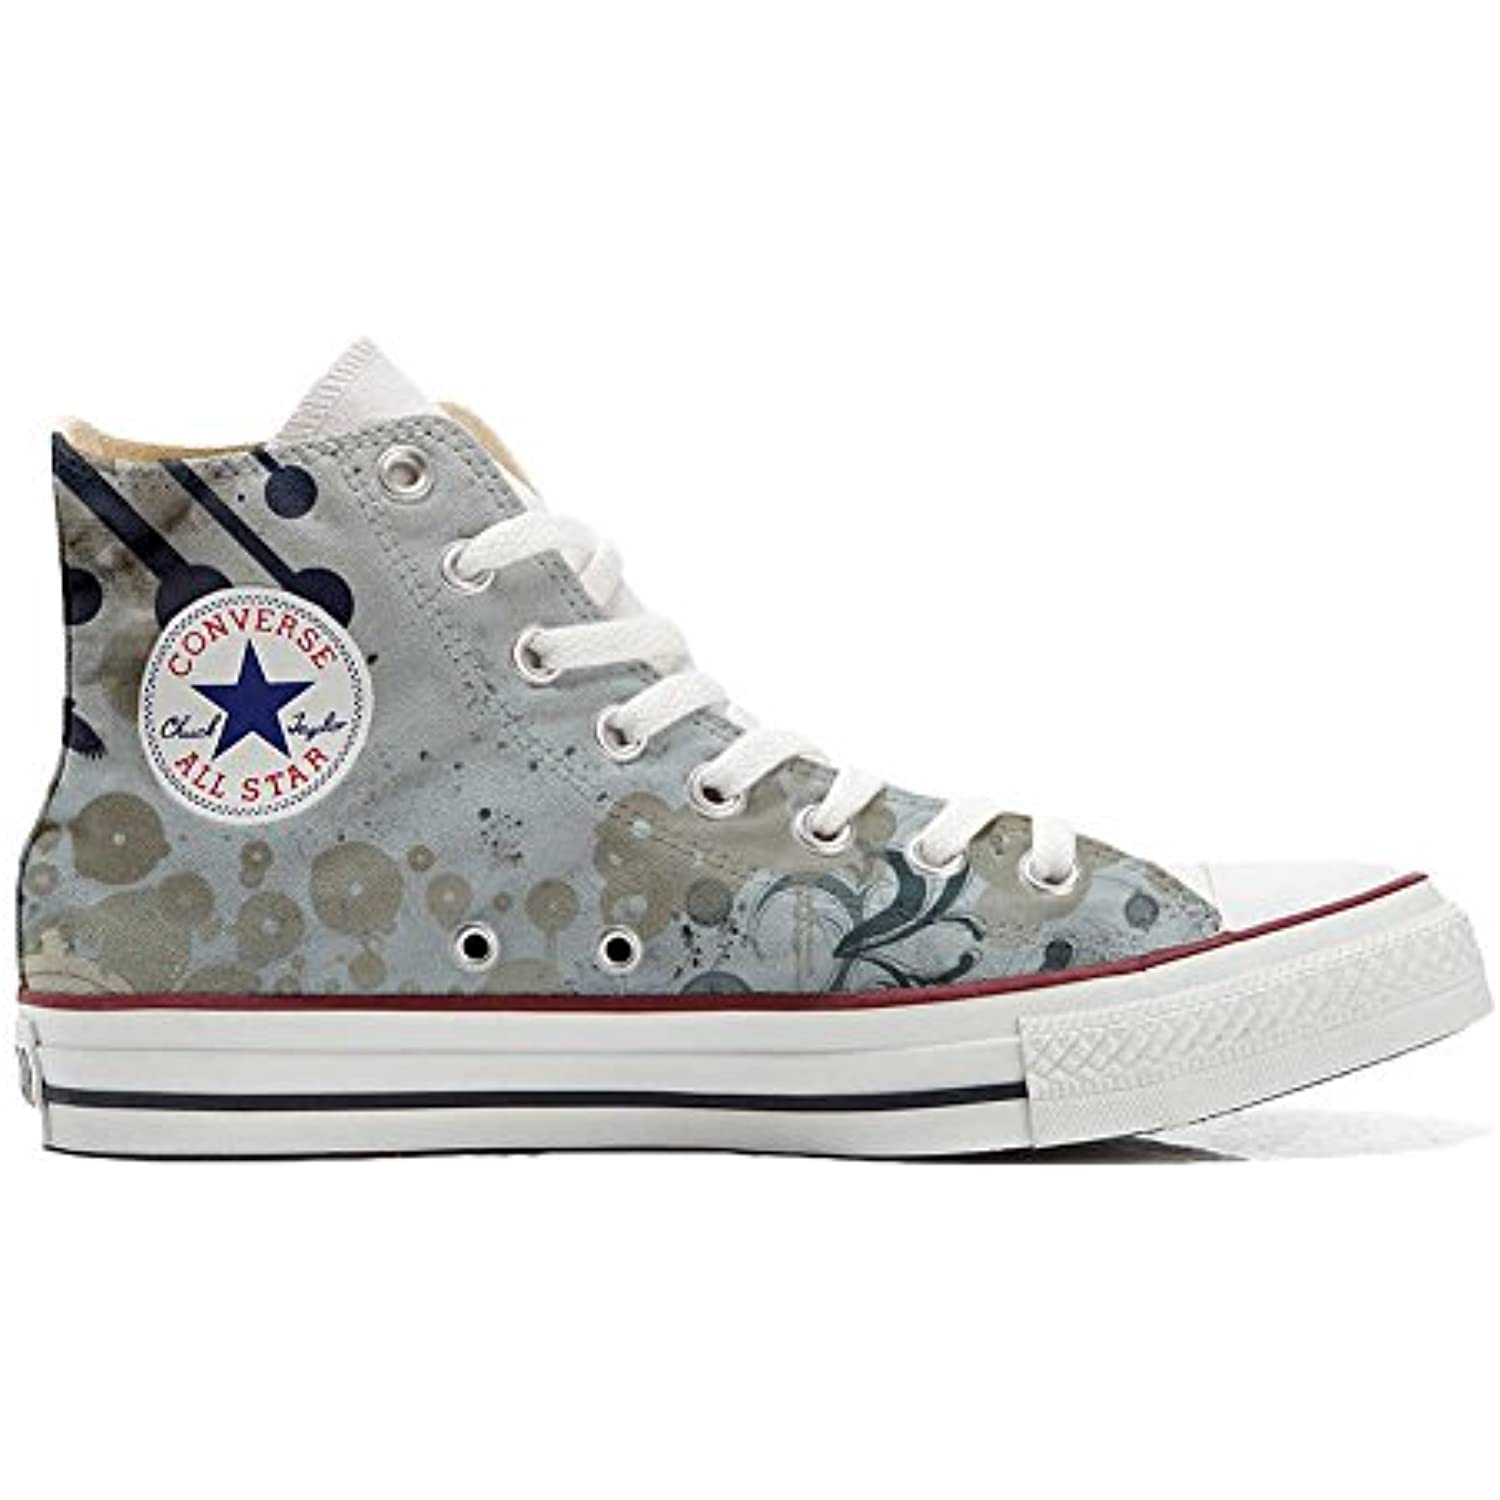 mys Converse Customized Adulte - Chaussures Coutume Fantasy (Produit Artisanal) Chic Fantasy Coutume - B01NCVKD4W - bbca15